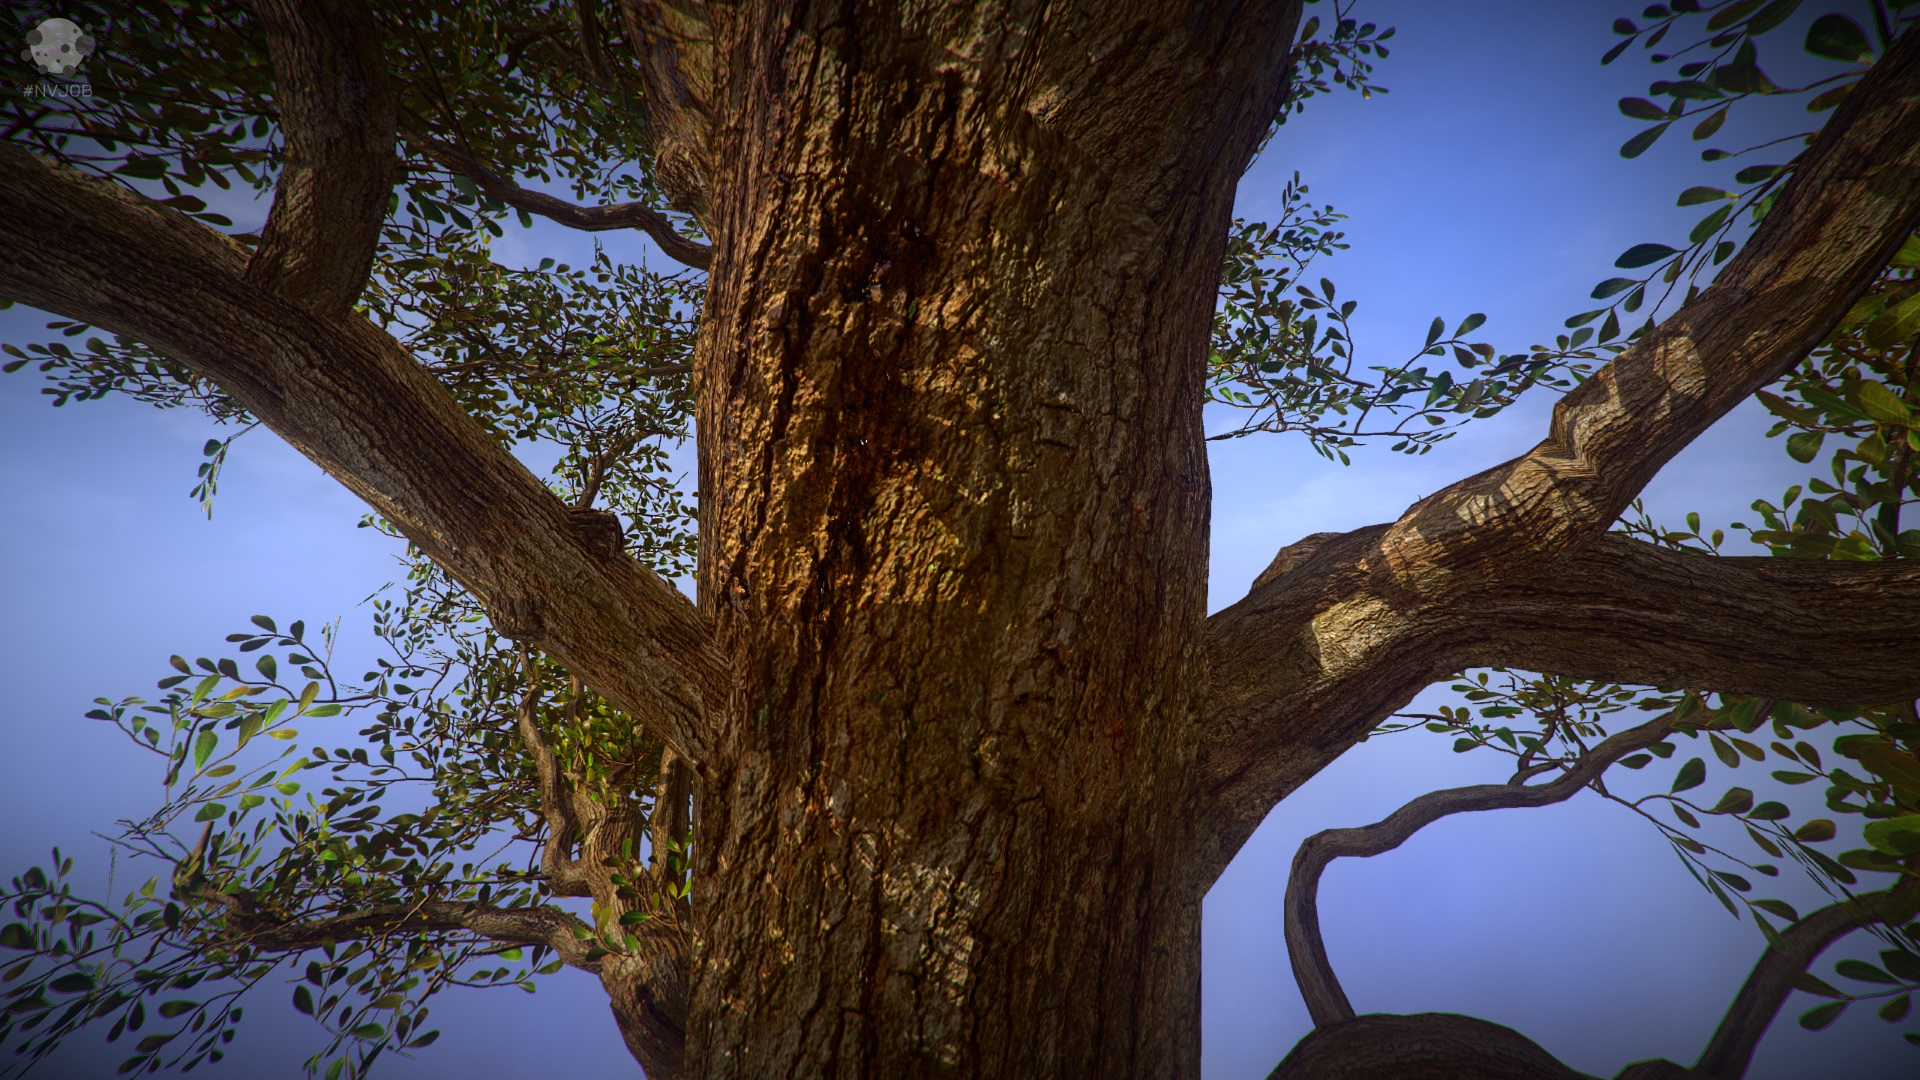 #NVJOB Shader for Unity SpeedTree 8 (STC8)